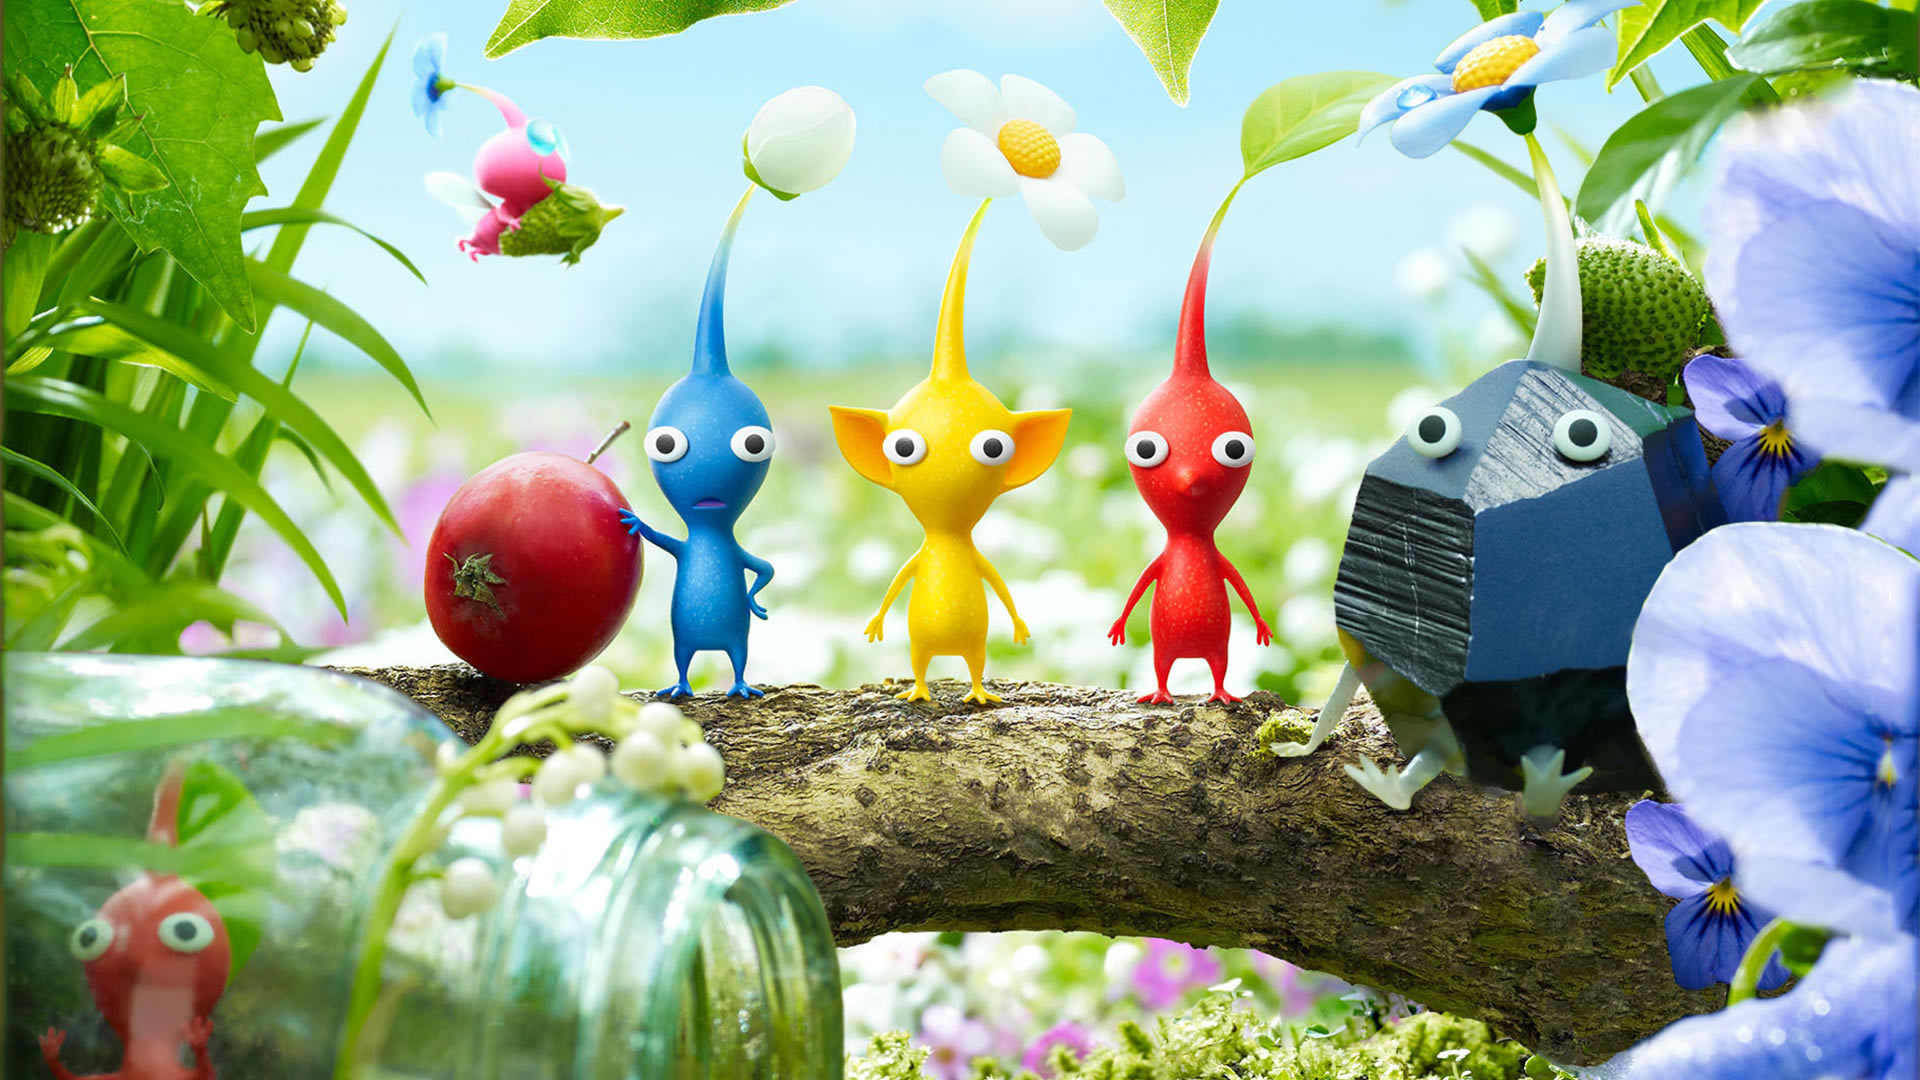 Pikmin 3 Backgrounds on Wallpapers Vista